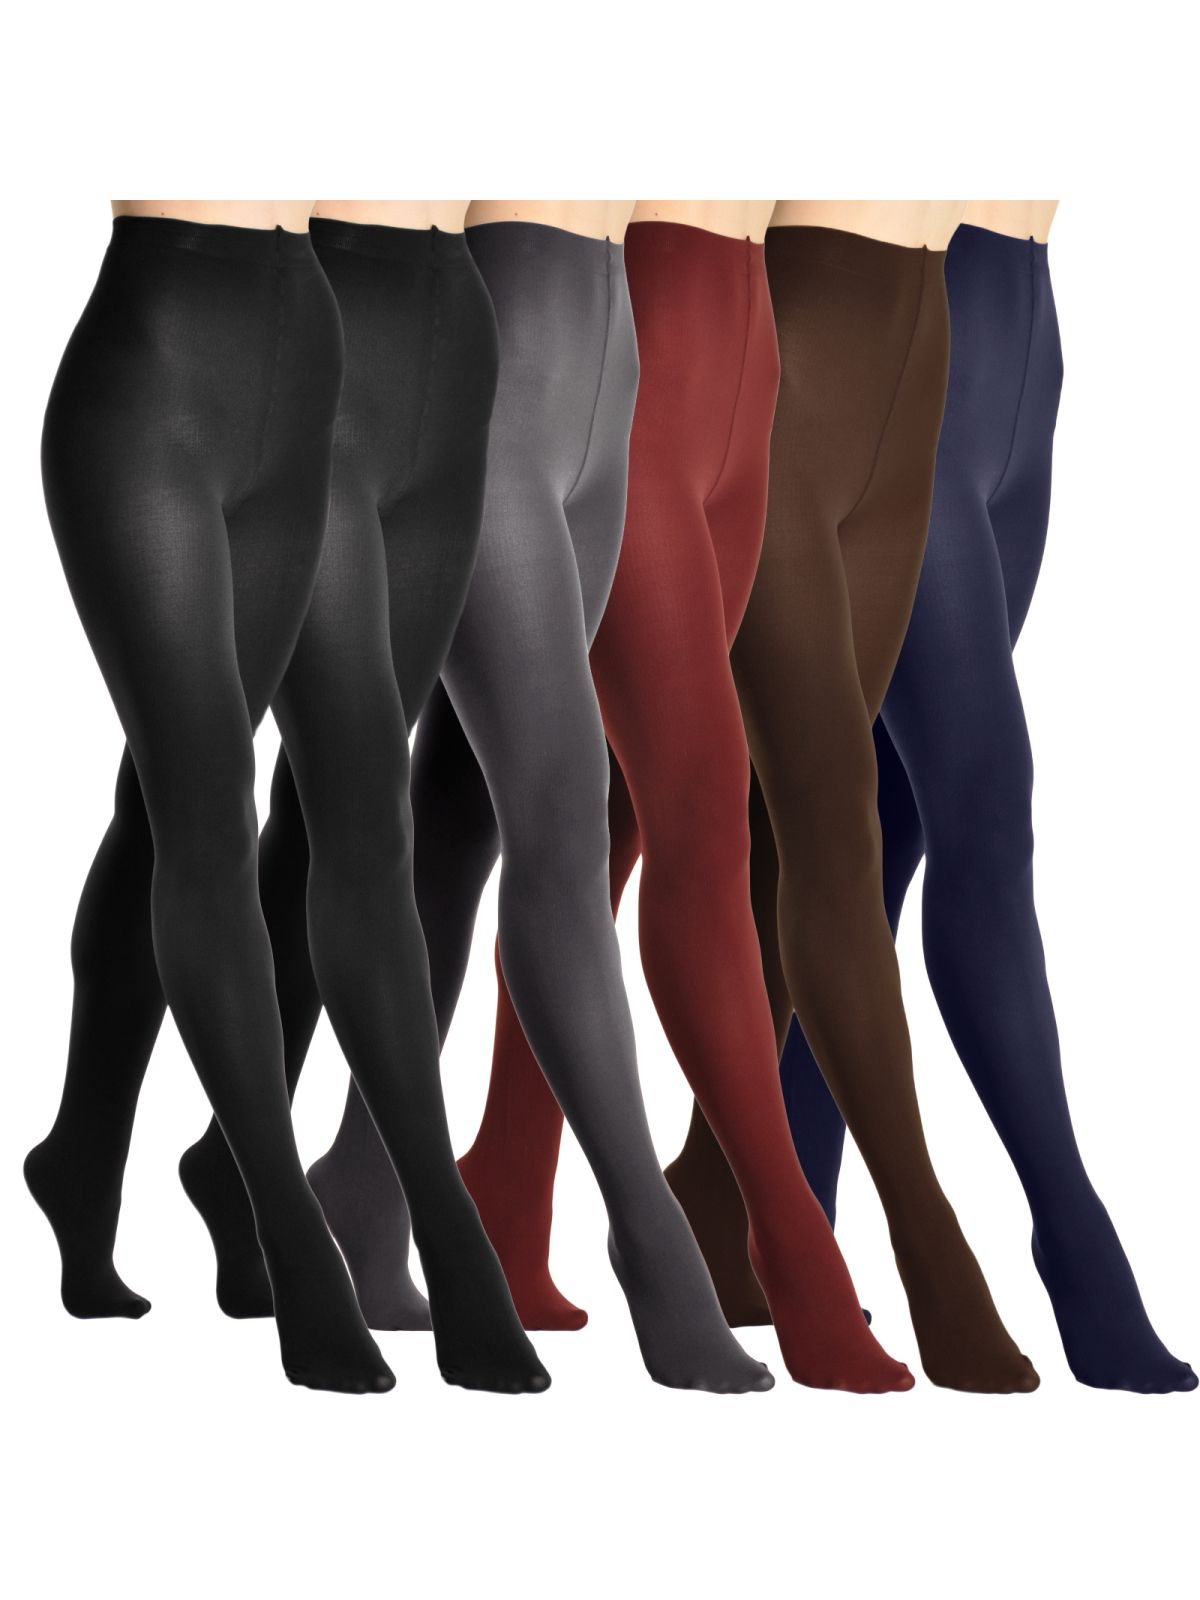 872751345f8c5 Angelina Winter Warmth Brushed Interior Thermal Tights (6-Pack)#Warmth,  #Brushed, #Angelina